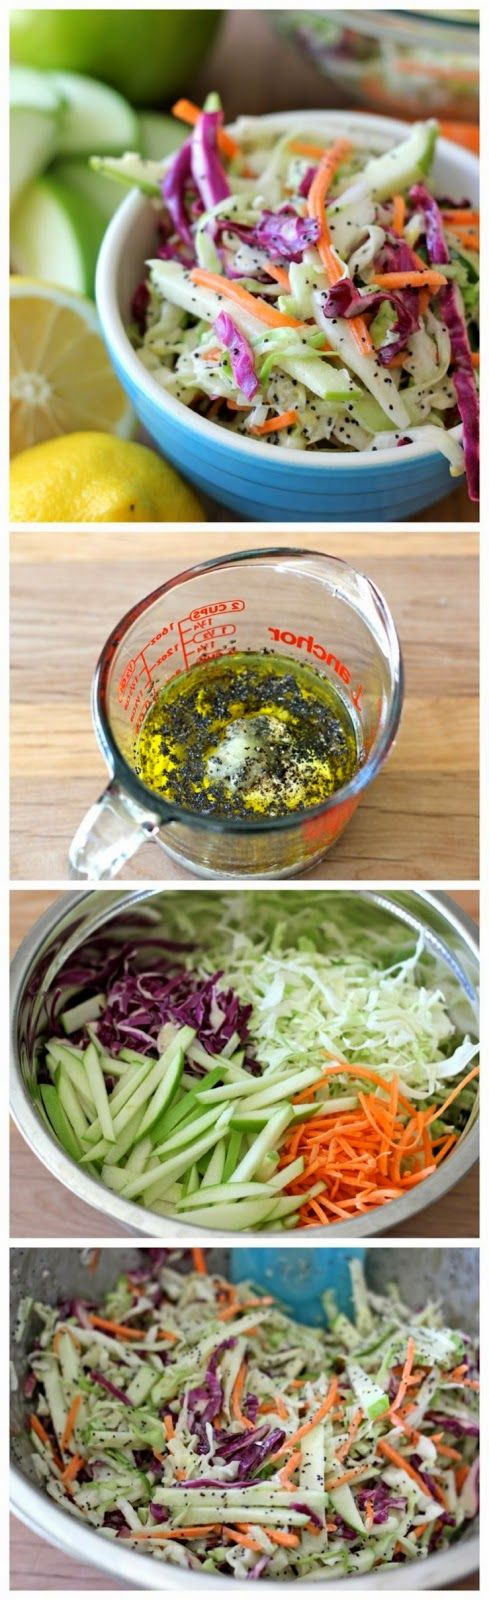 Apple and Poppy Seed Coleslaw...I preferred a little honey or sugar in the dressing along with celery seeds !